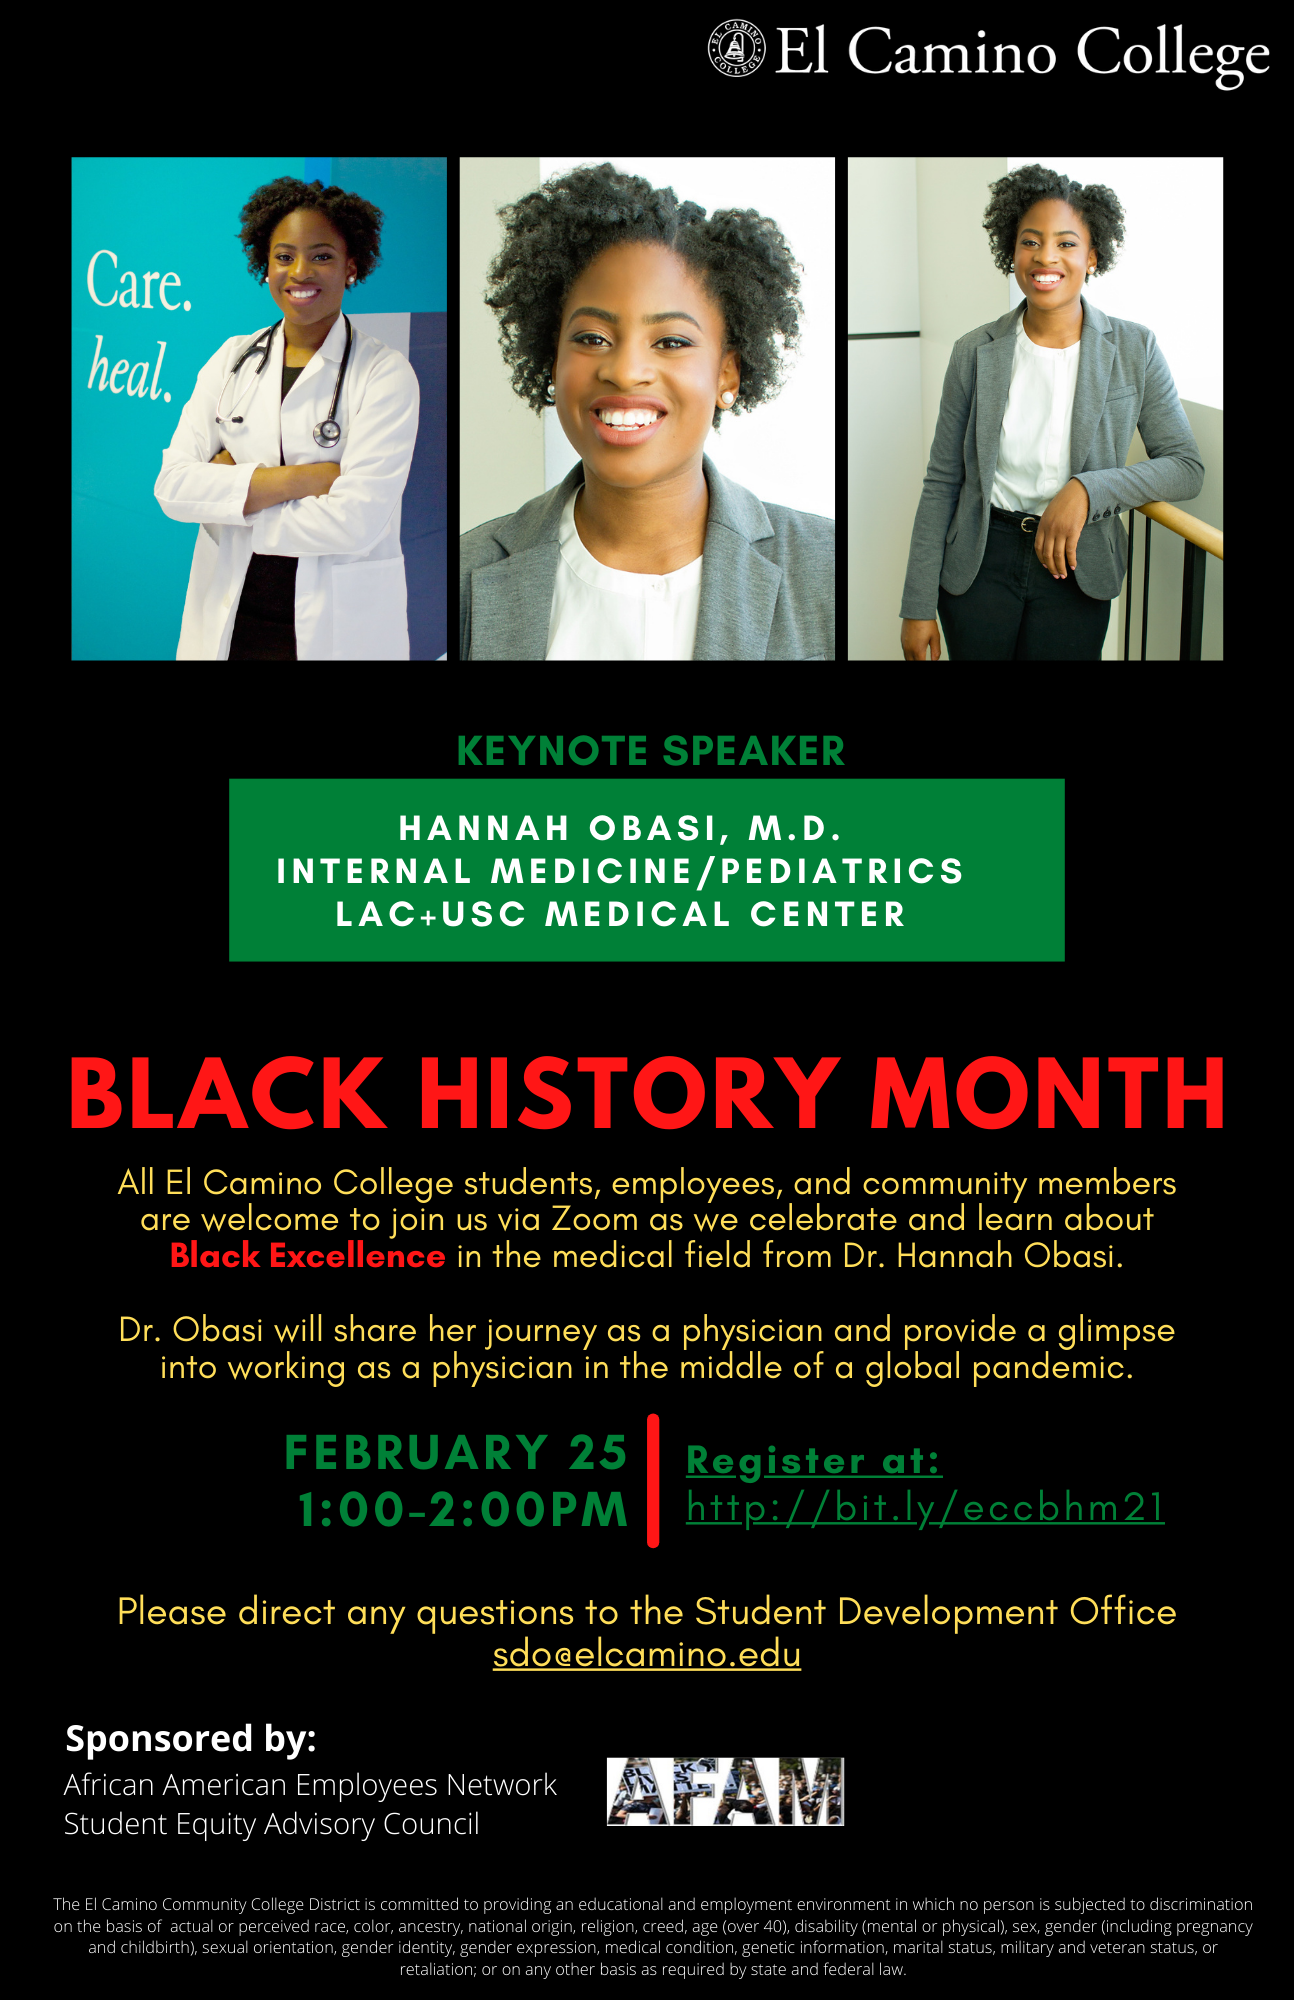 Black History Month Keynote Address Flyer